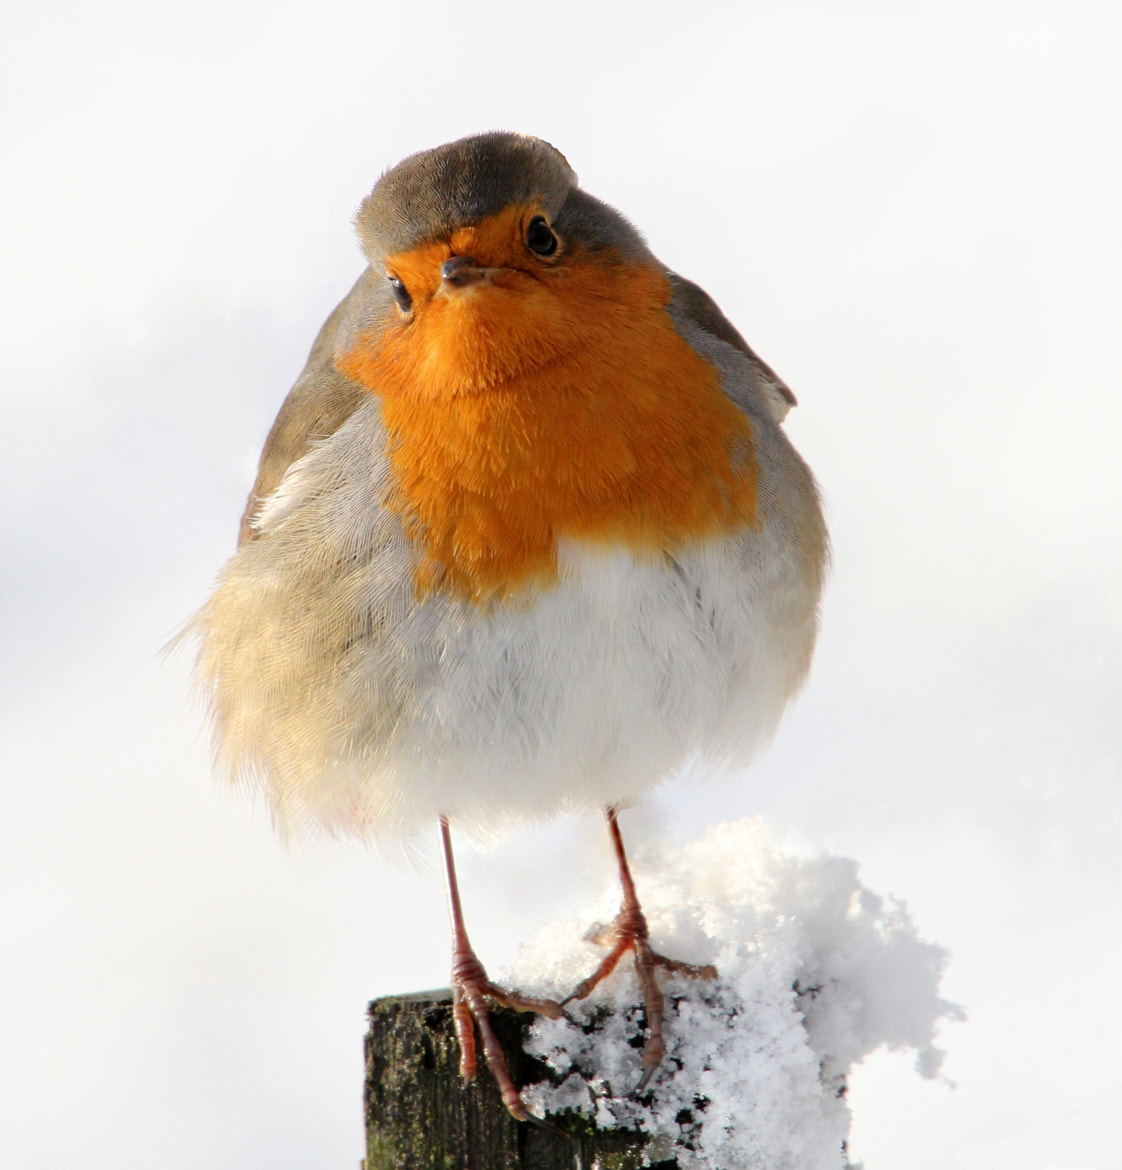 Photograph Melancholy Robin by Ger Bosma on 500px